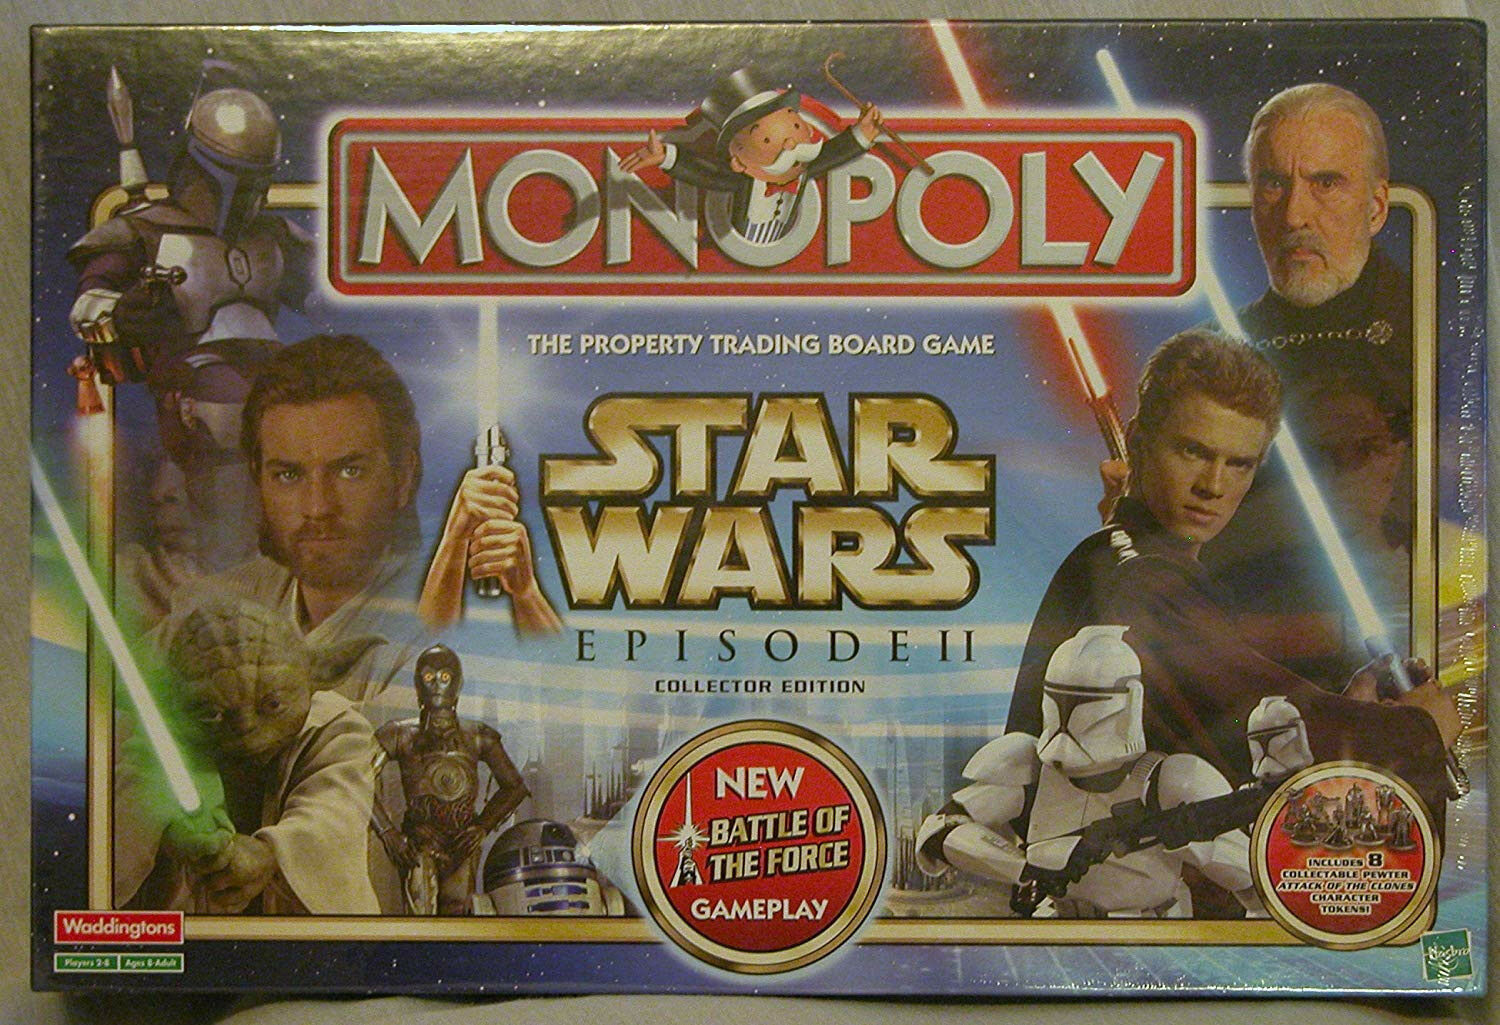 Star Wars Monopoly Episode II Collectors Edition By Waddingtons